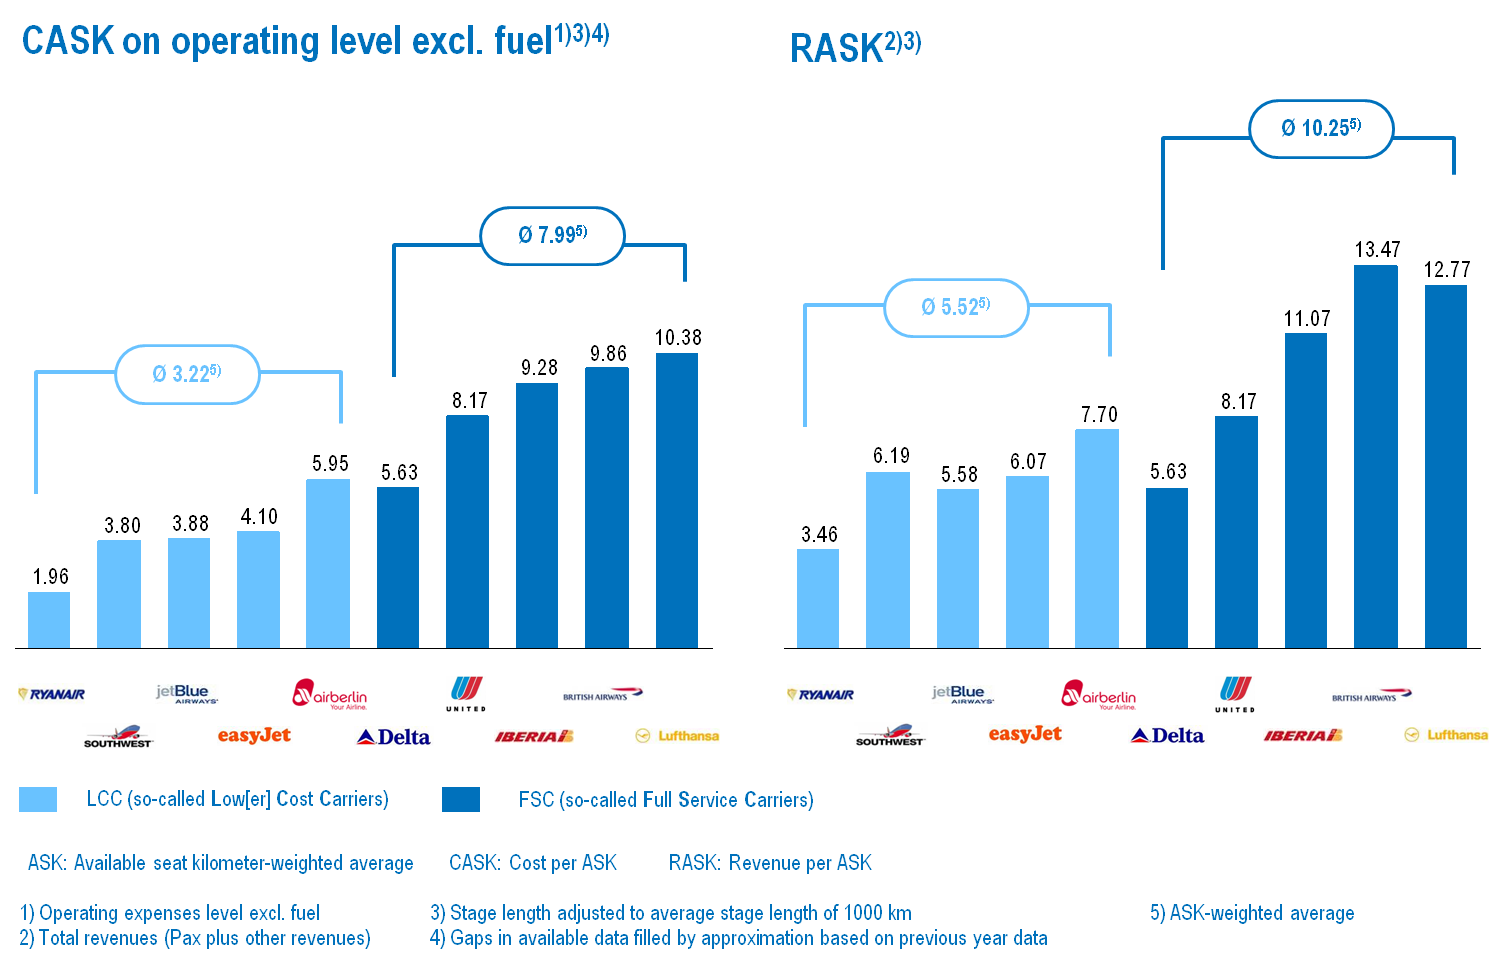 Figure 3: Cost Comparison between Low-cost Carriers and Network Airlines [EUR ct per available seat kilometer (ASK) excl.